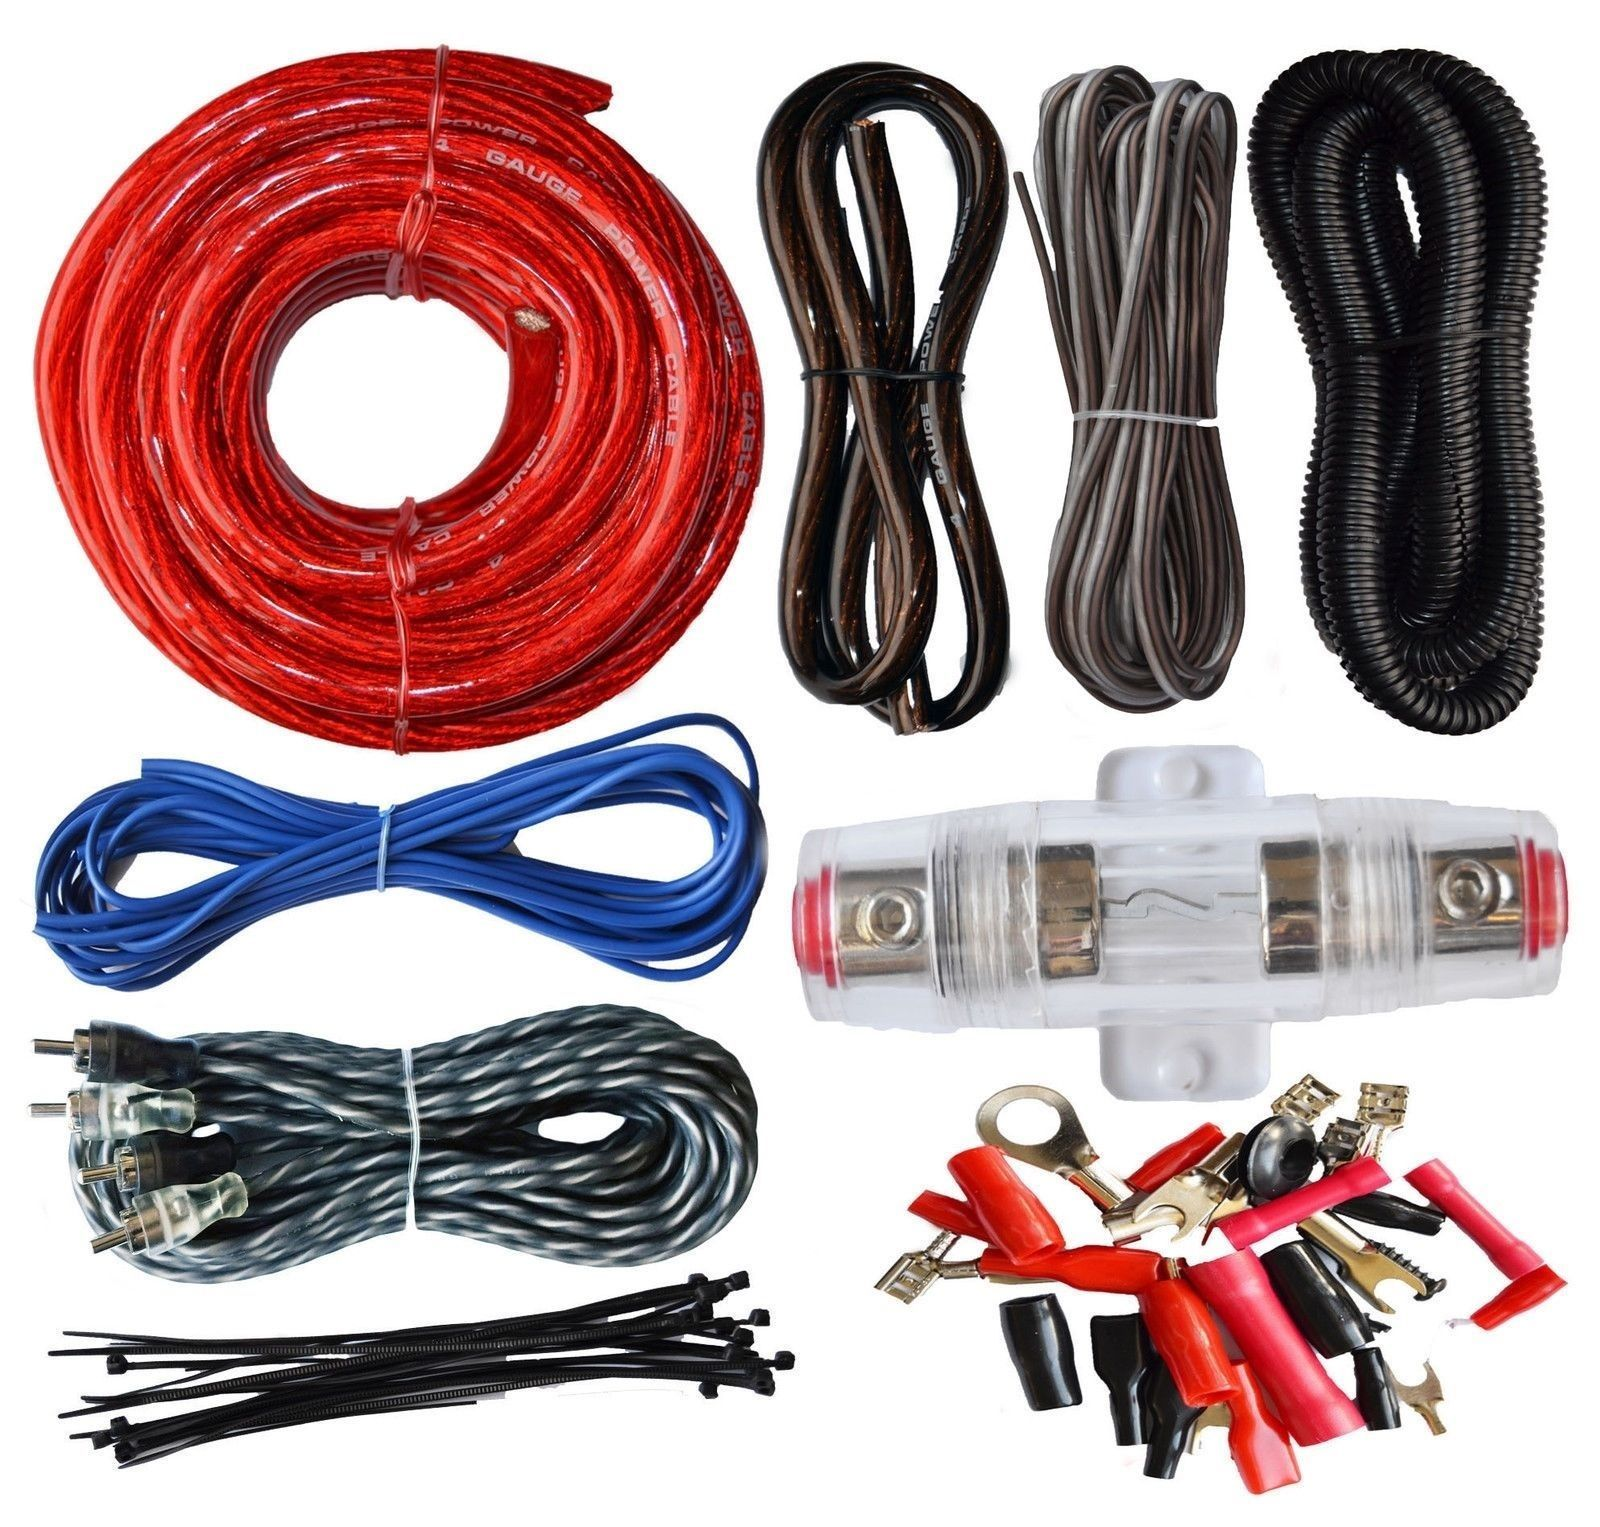 SoundBox Connected 4 Gauge Amp Kit Amplifier Install Wiring Complete 4 Ga  Wire #amplifier #wiring #kits #electronics #accessories #installation  #products ...